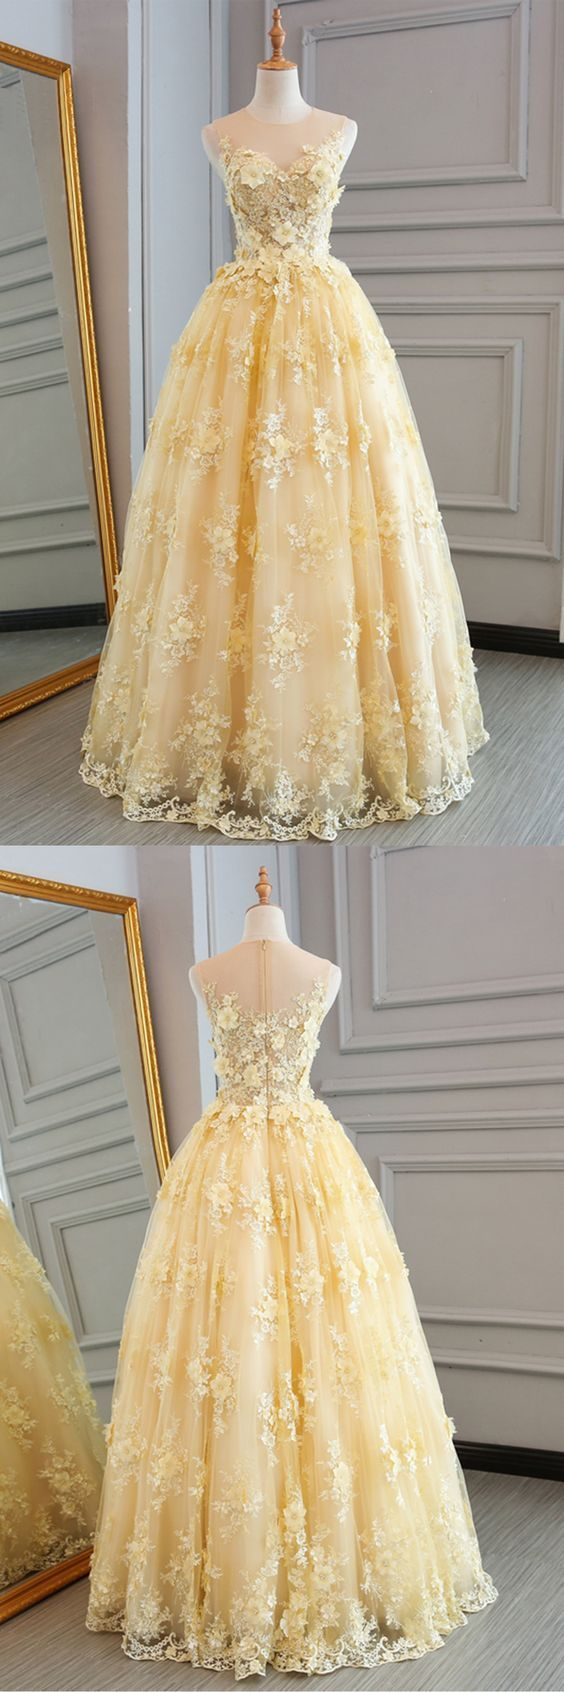 Yellow tulle lace prom dress ball gown prom dressespd